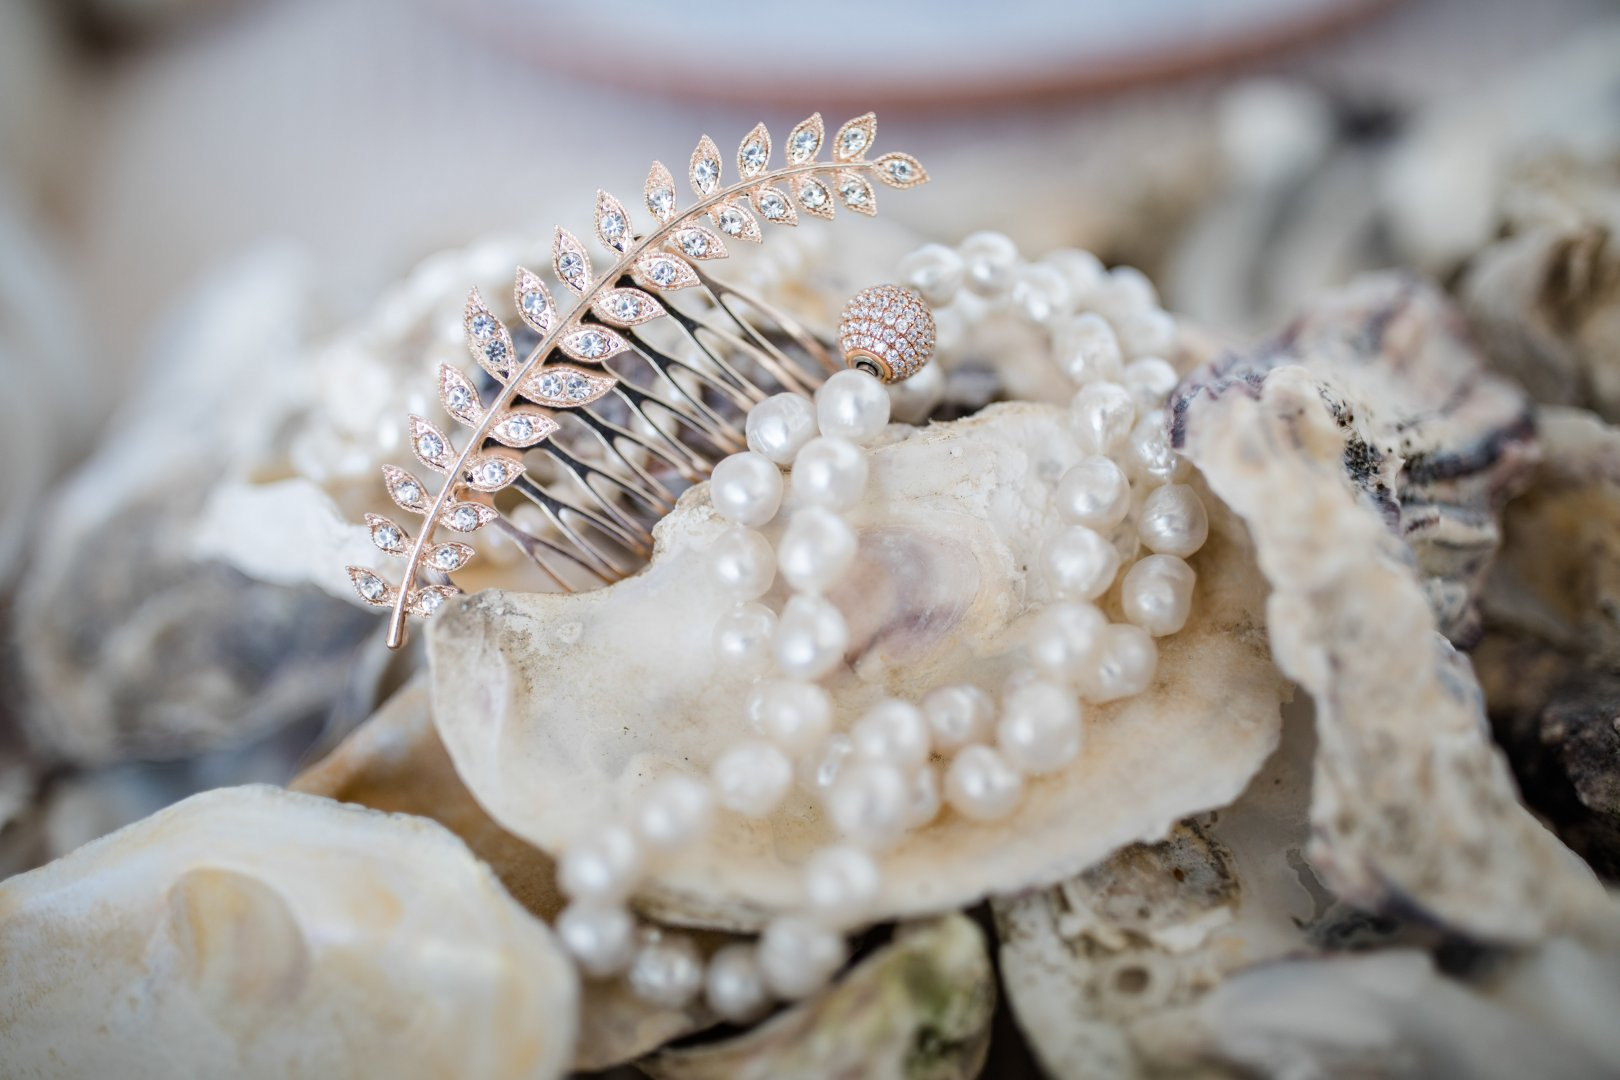 Shell Pearl Natural material Conch Cockle